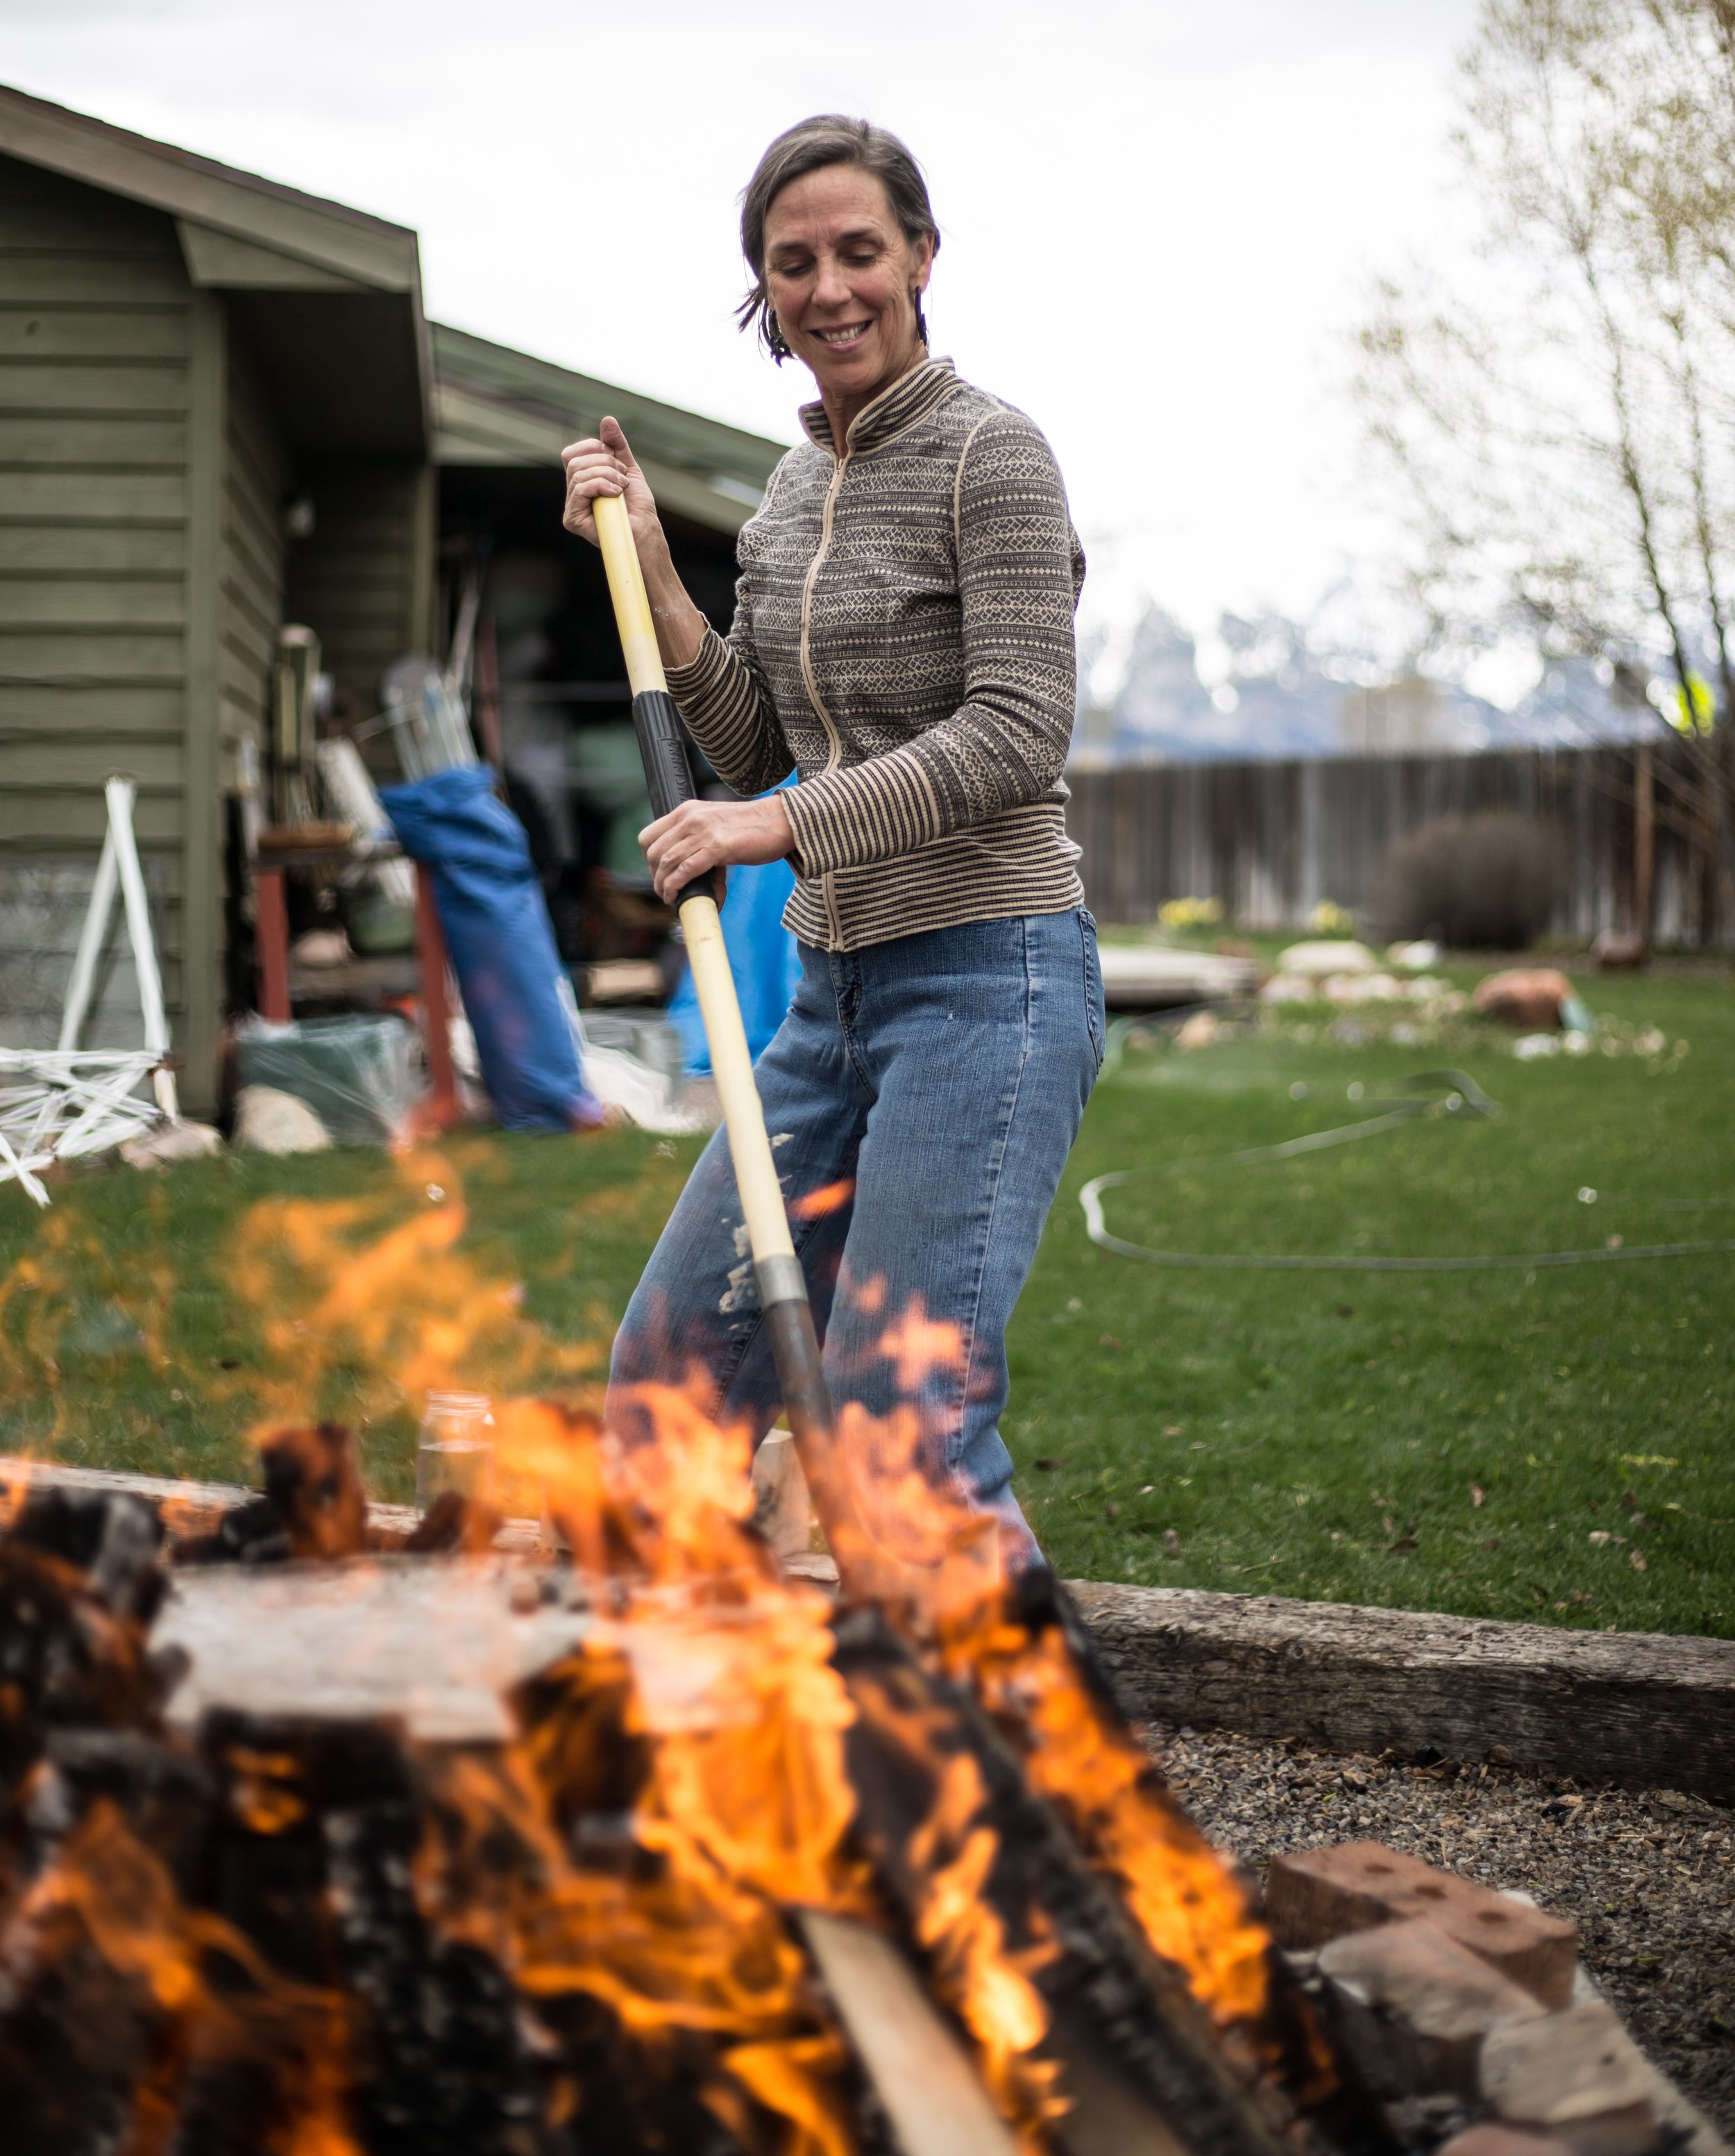 20160426_ValerieSeaberg_rd_070 Val Pit fire by Rayan.jpg